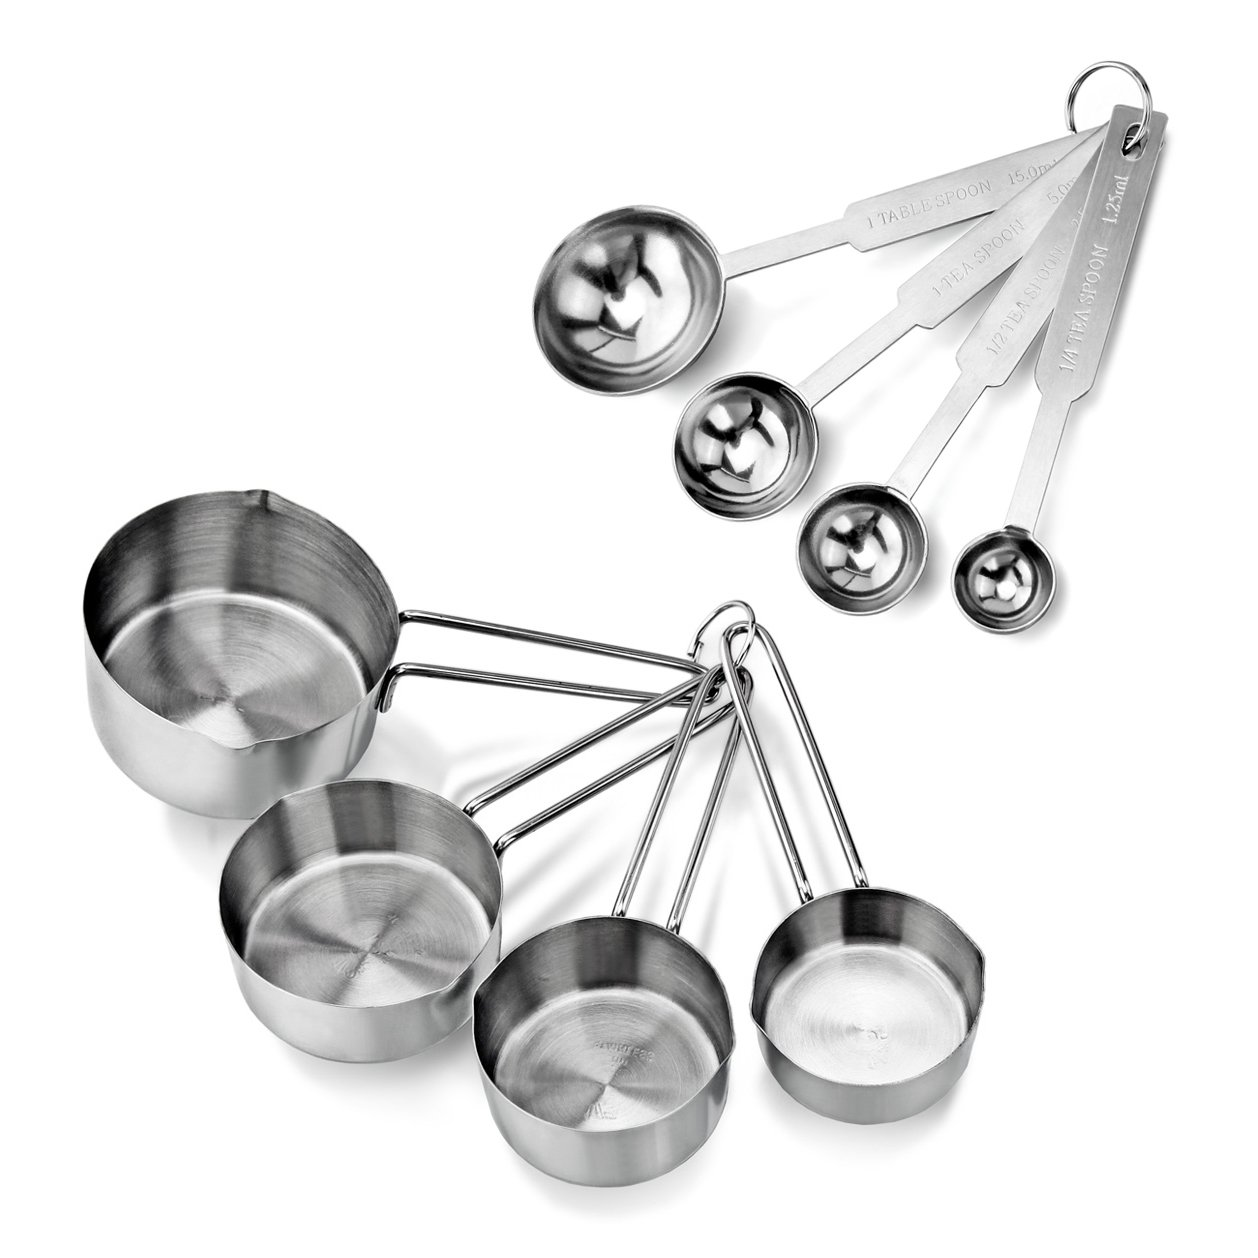 New Star Foodservice 42917 Stainless Steel Measuring Spoons and Measuring Cups Combo, Set of 8